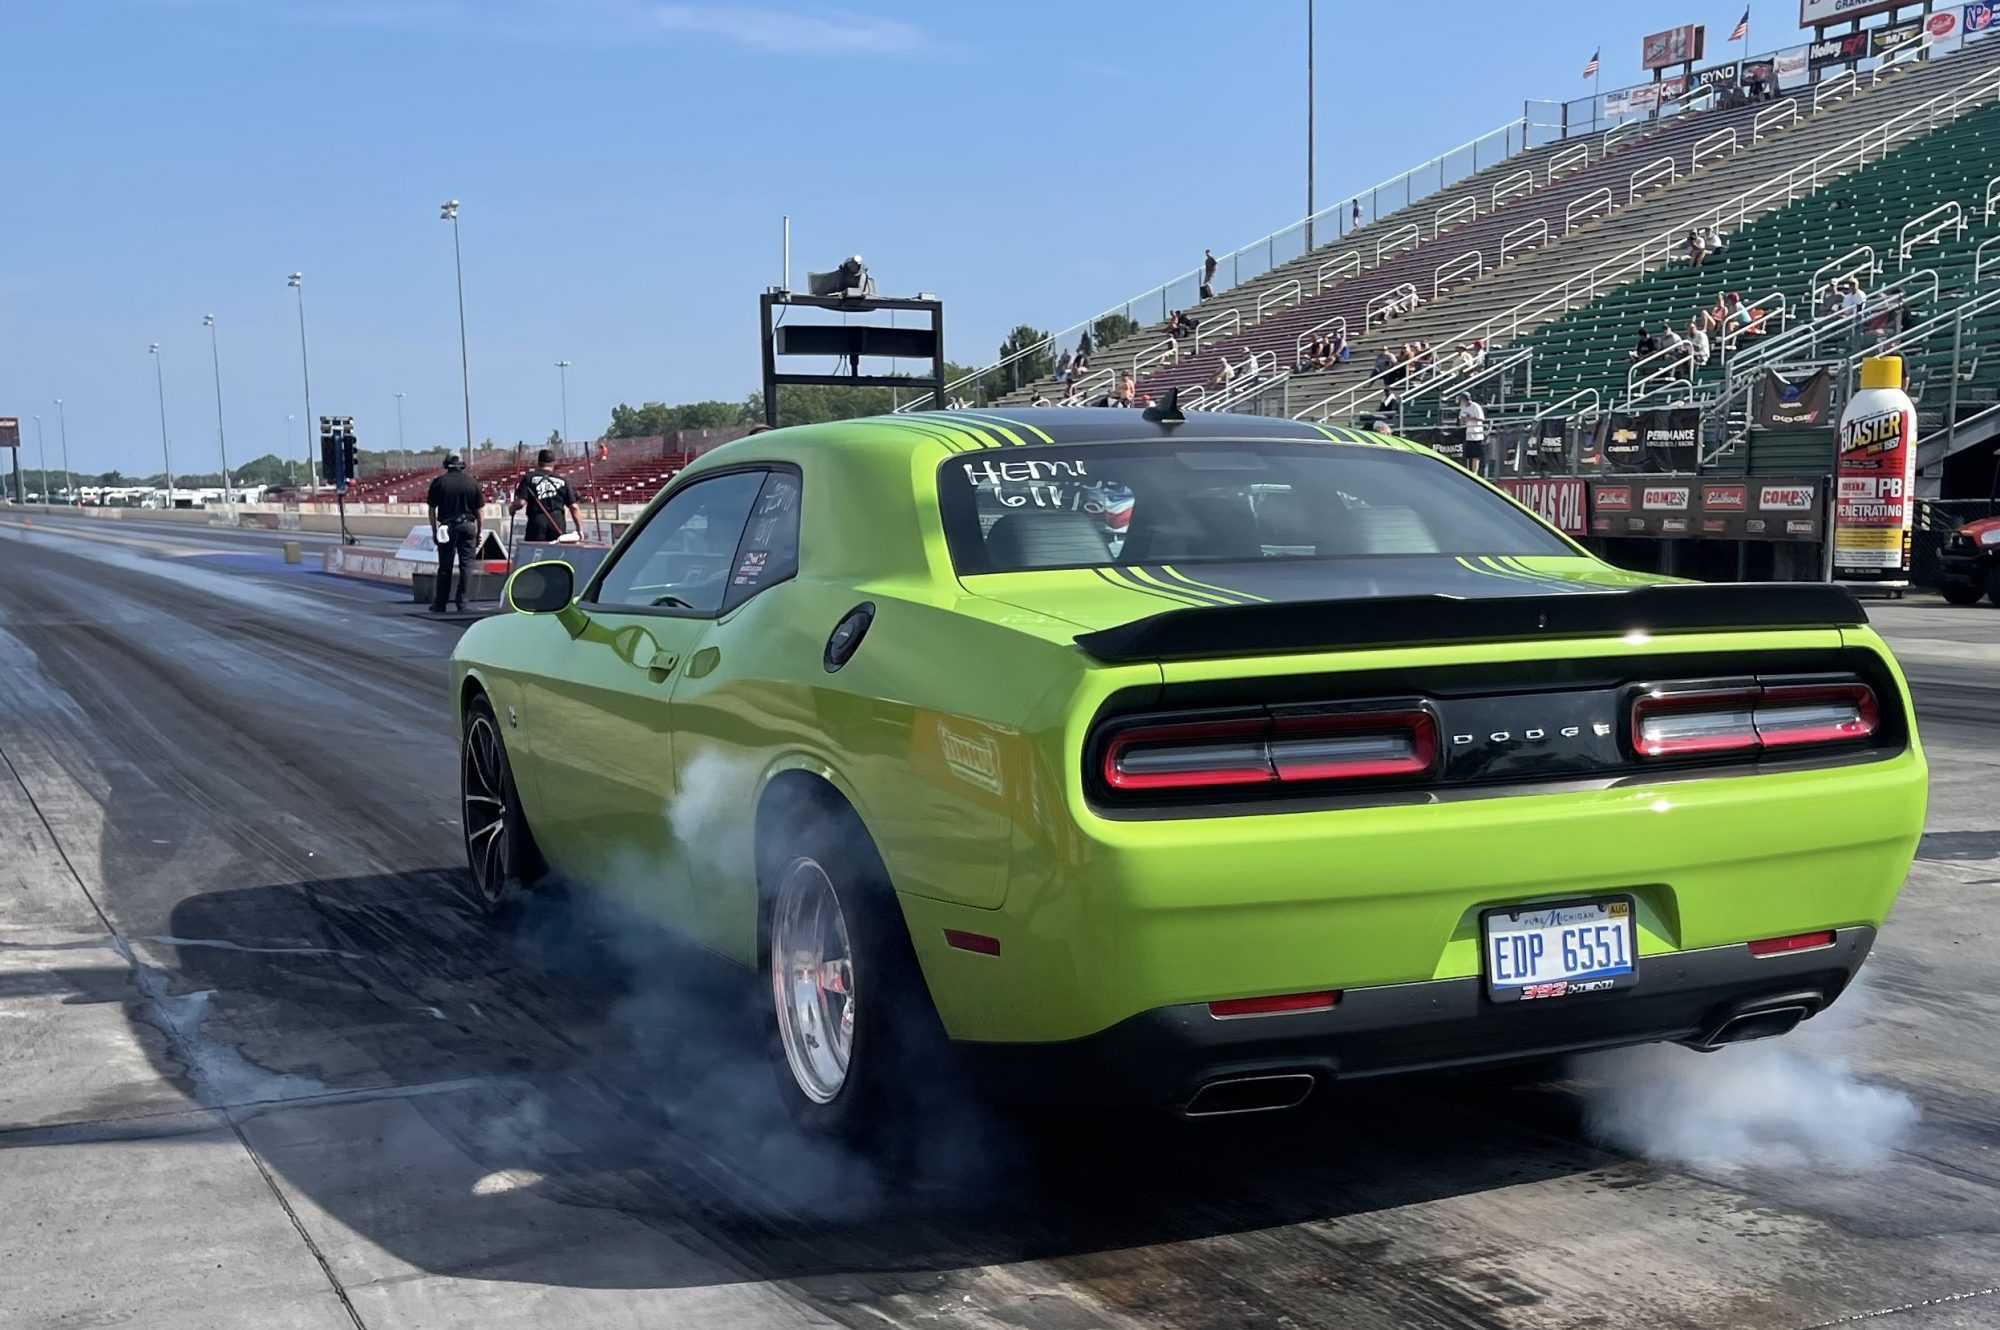 Challenger doing a burnout before drag racing